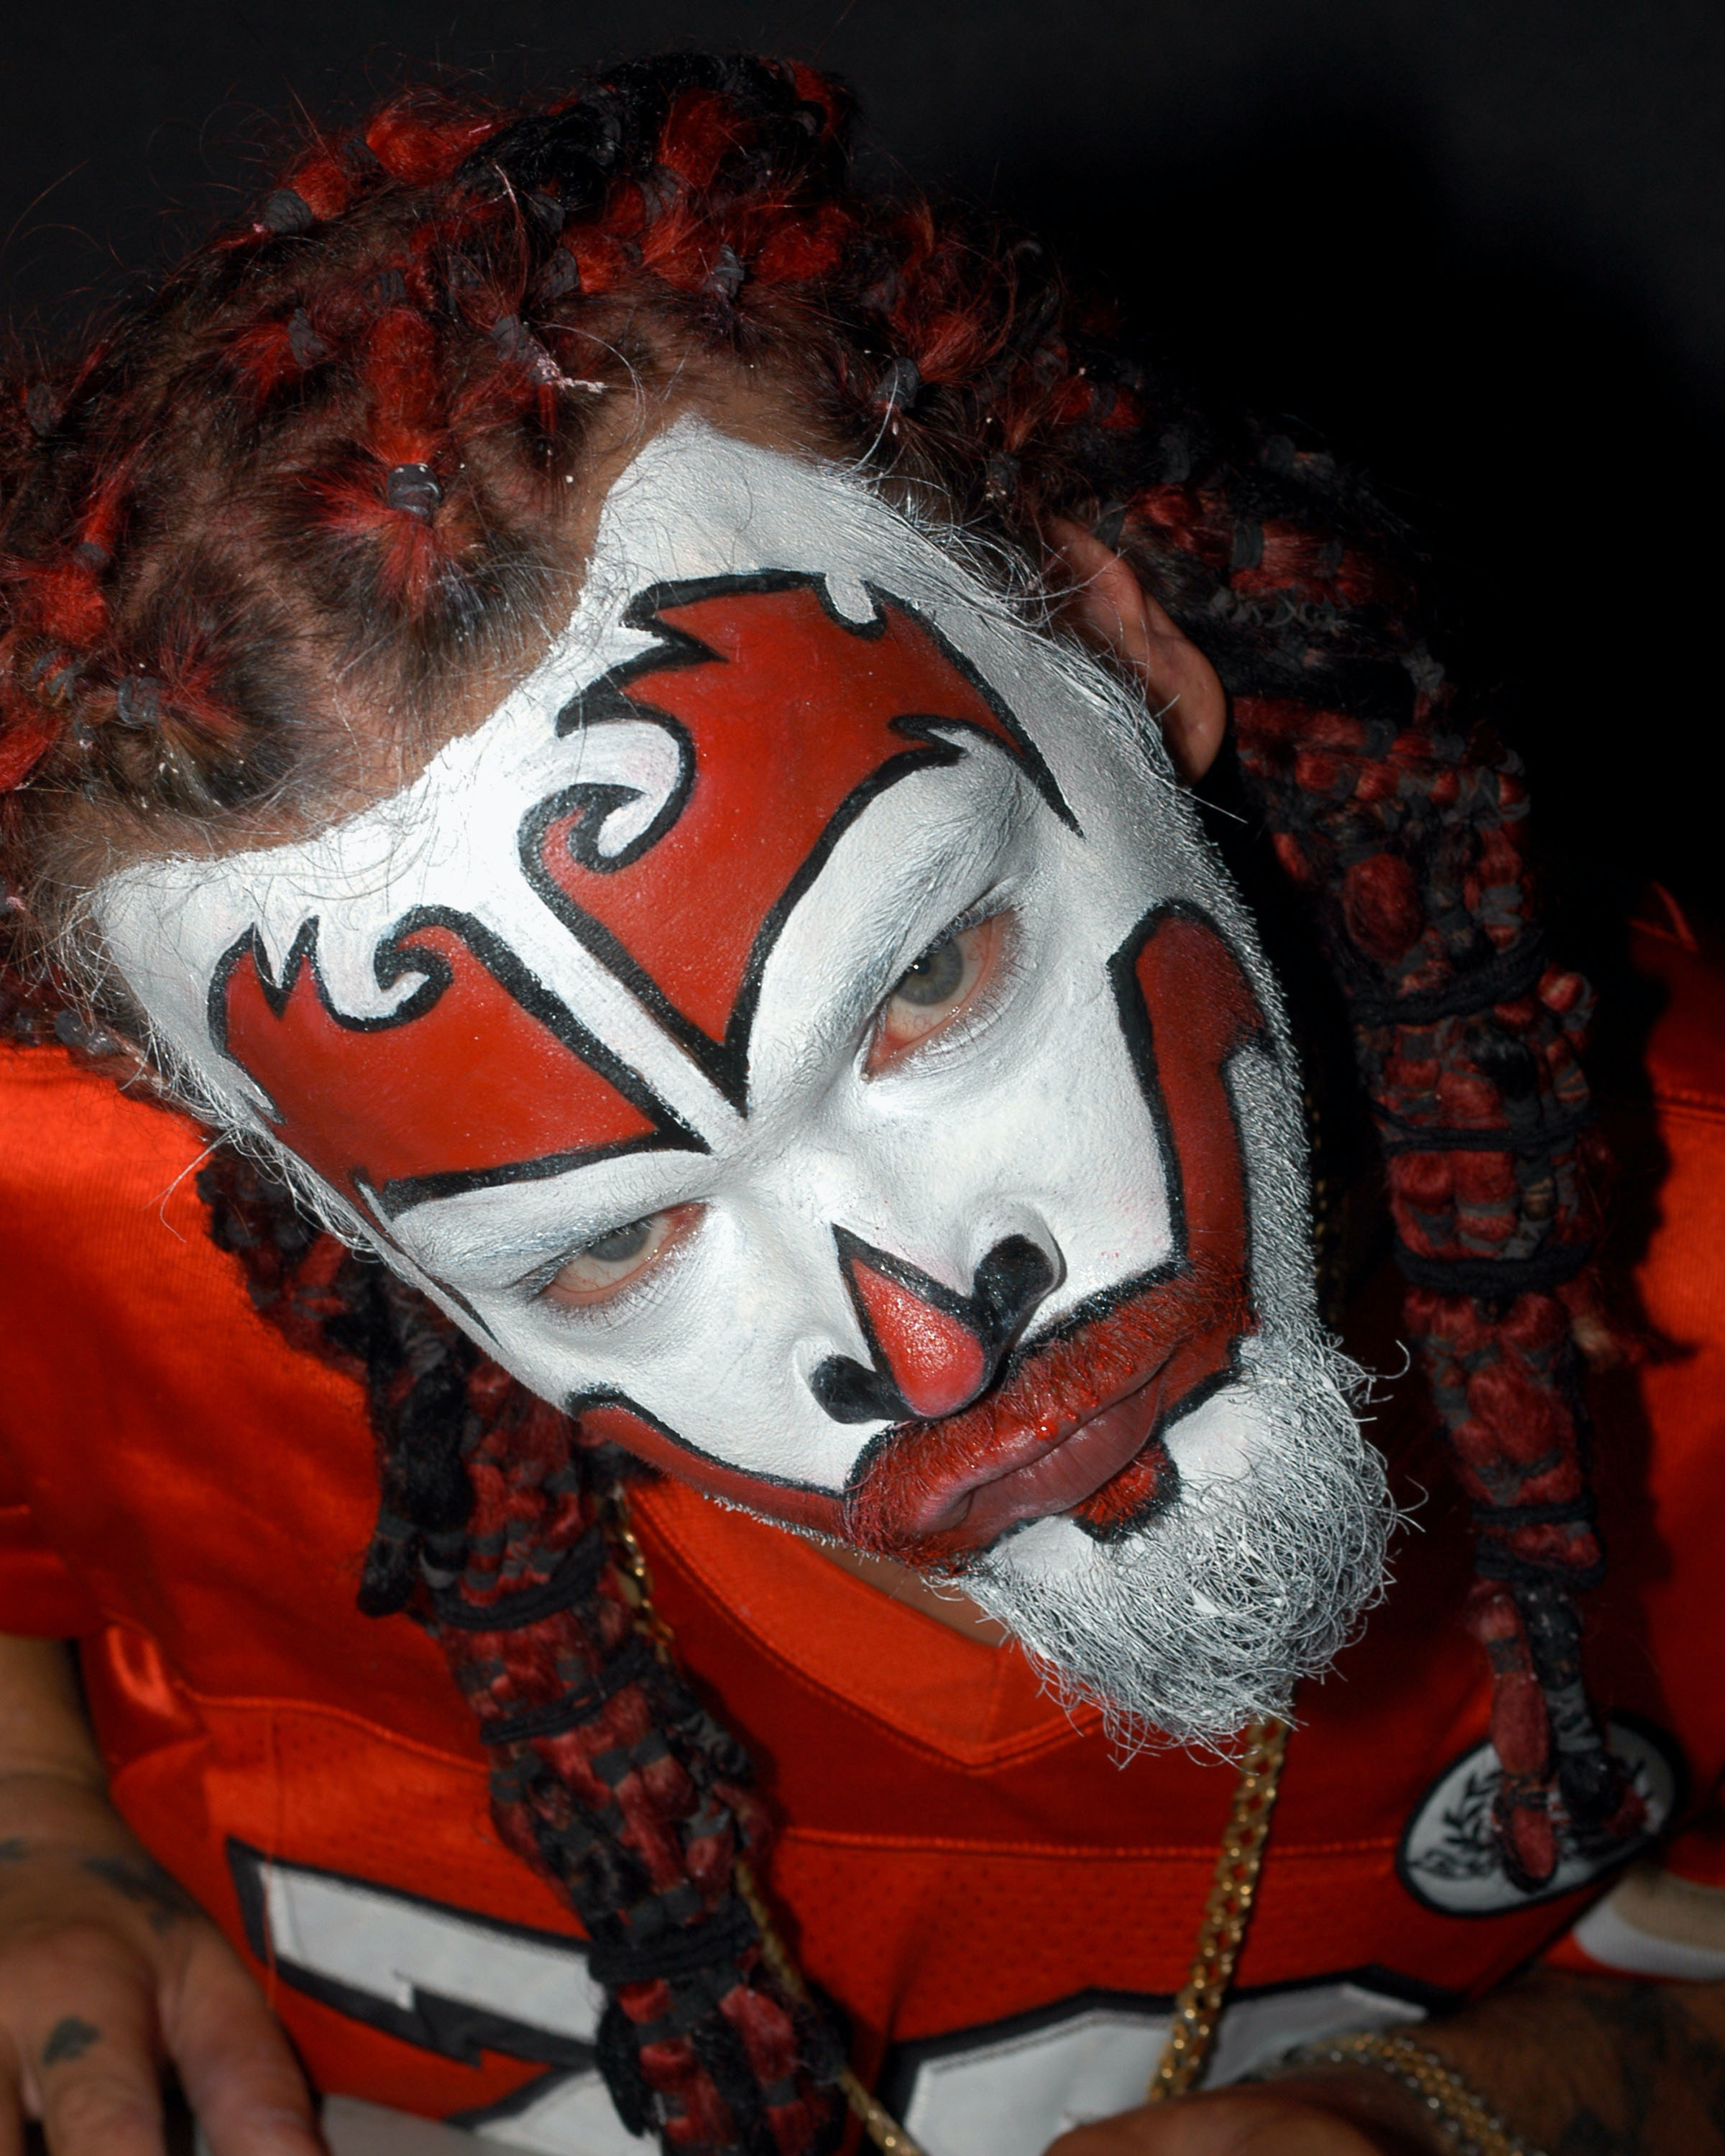 Juggalos protest gang designation in Washington march